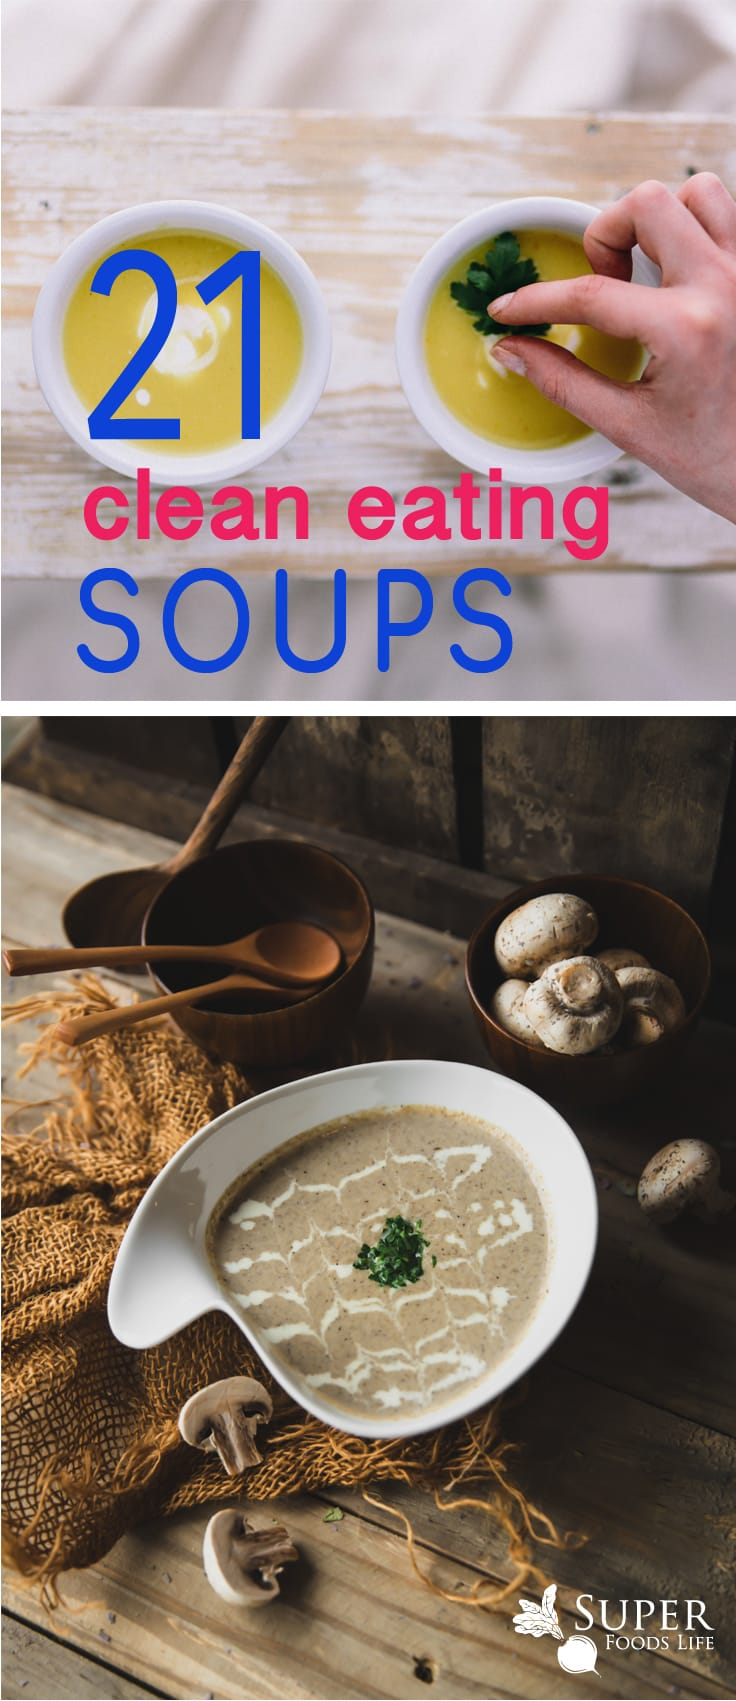 Awesome clean eating soup recipes! If you like soups then you'll love these healthy soup recipes!